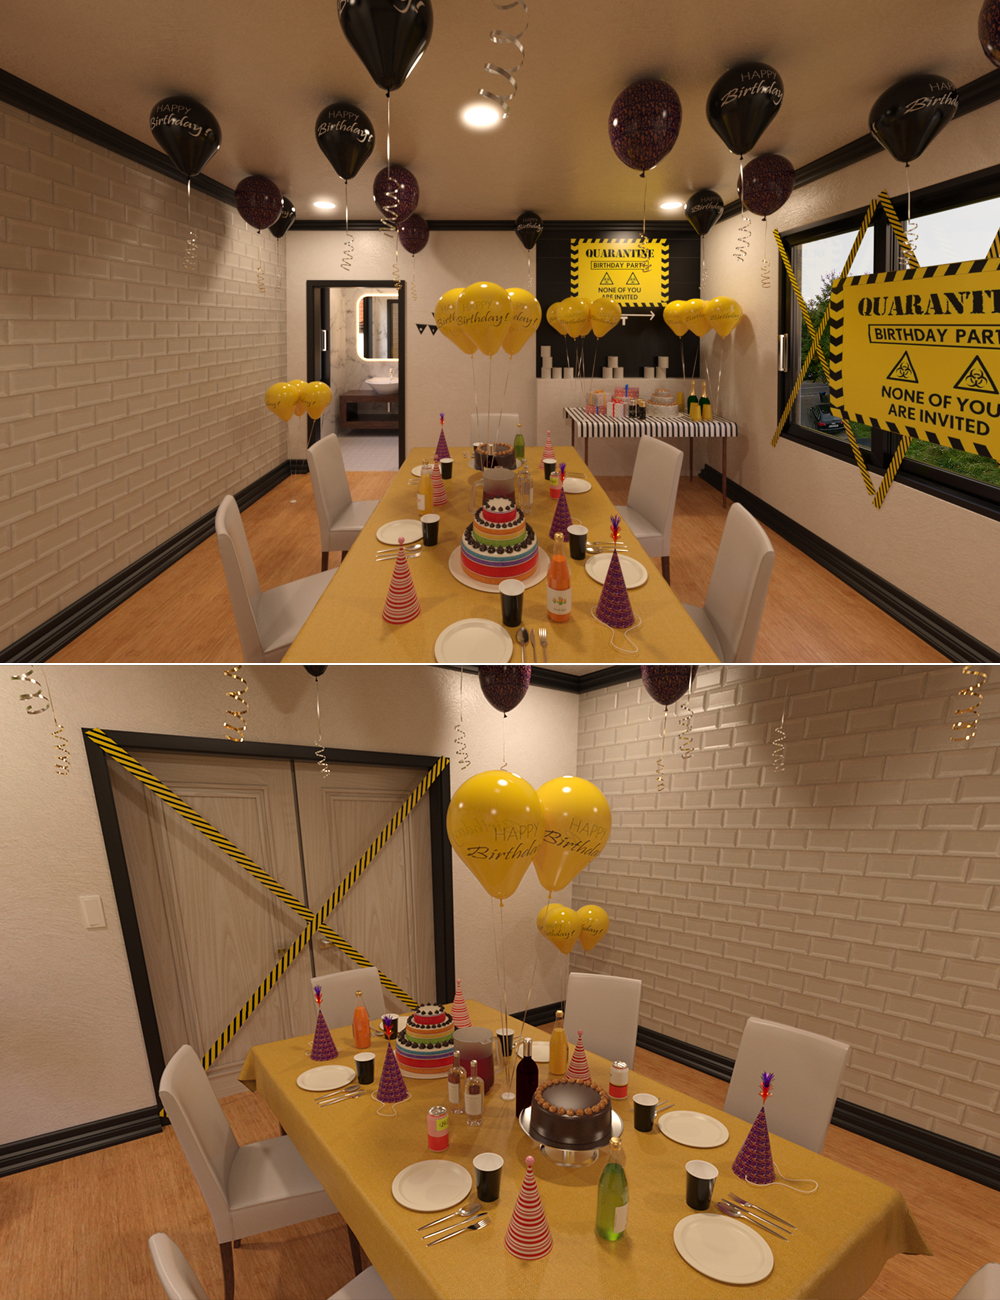 Quarantine Birthday Setup by: bituka3d, 3D Models by Daz 3D